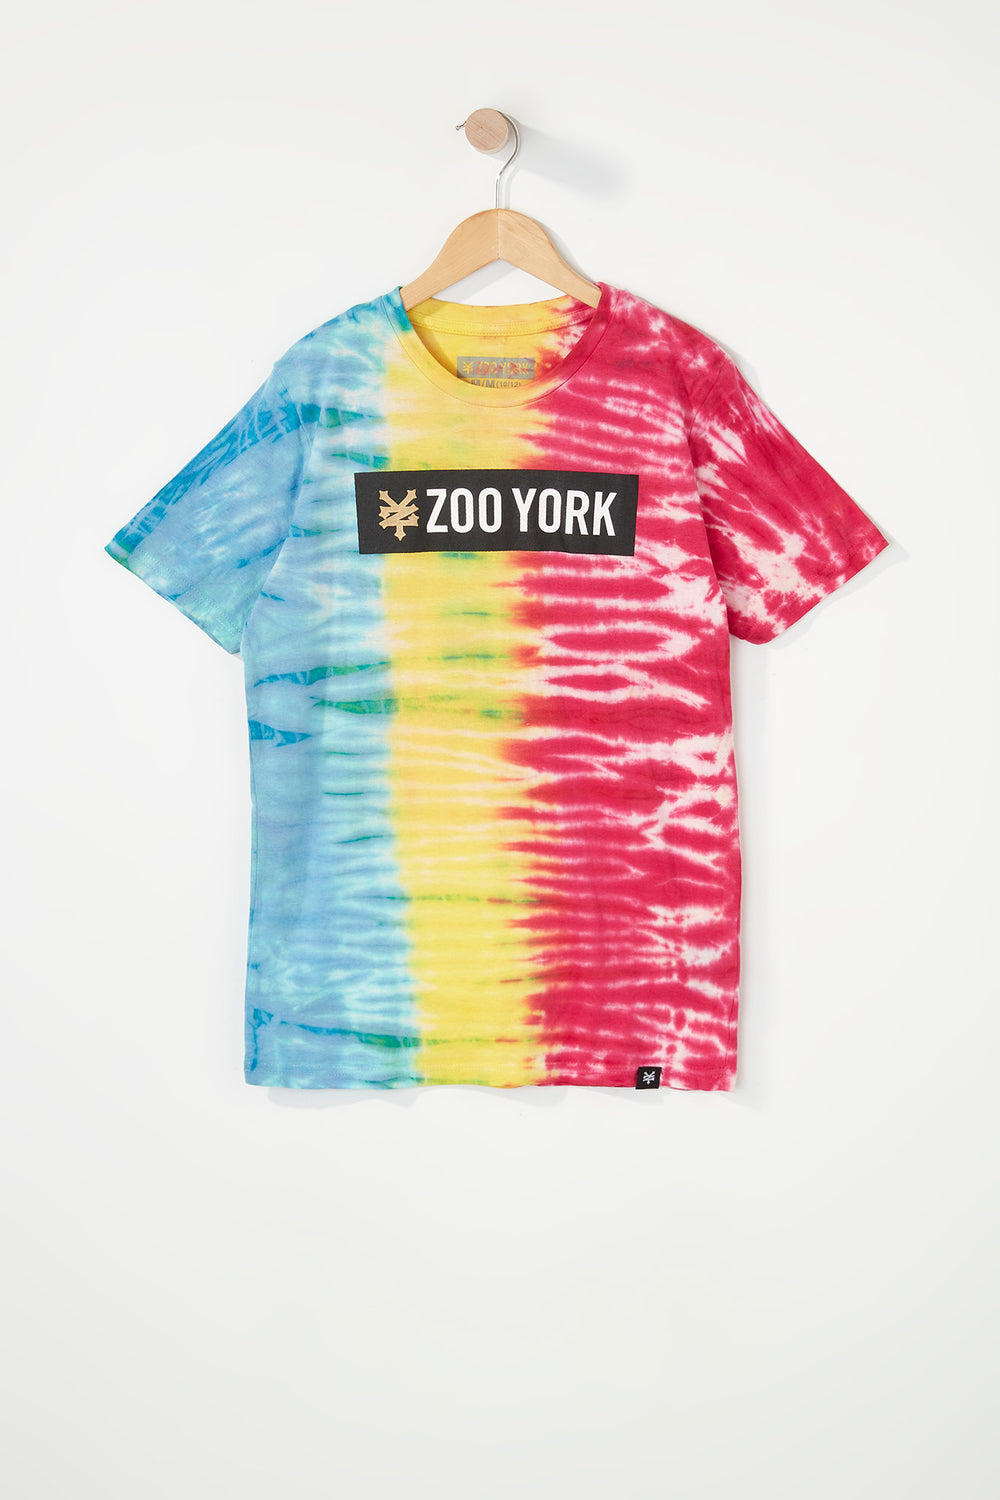 T-Shirt Tie Dye Zoo York Garçon Multi